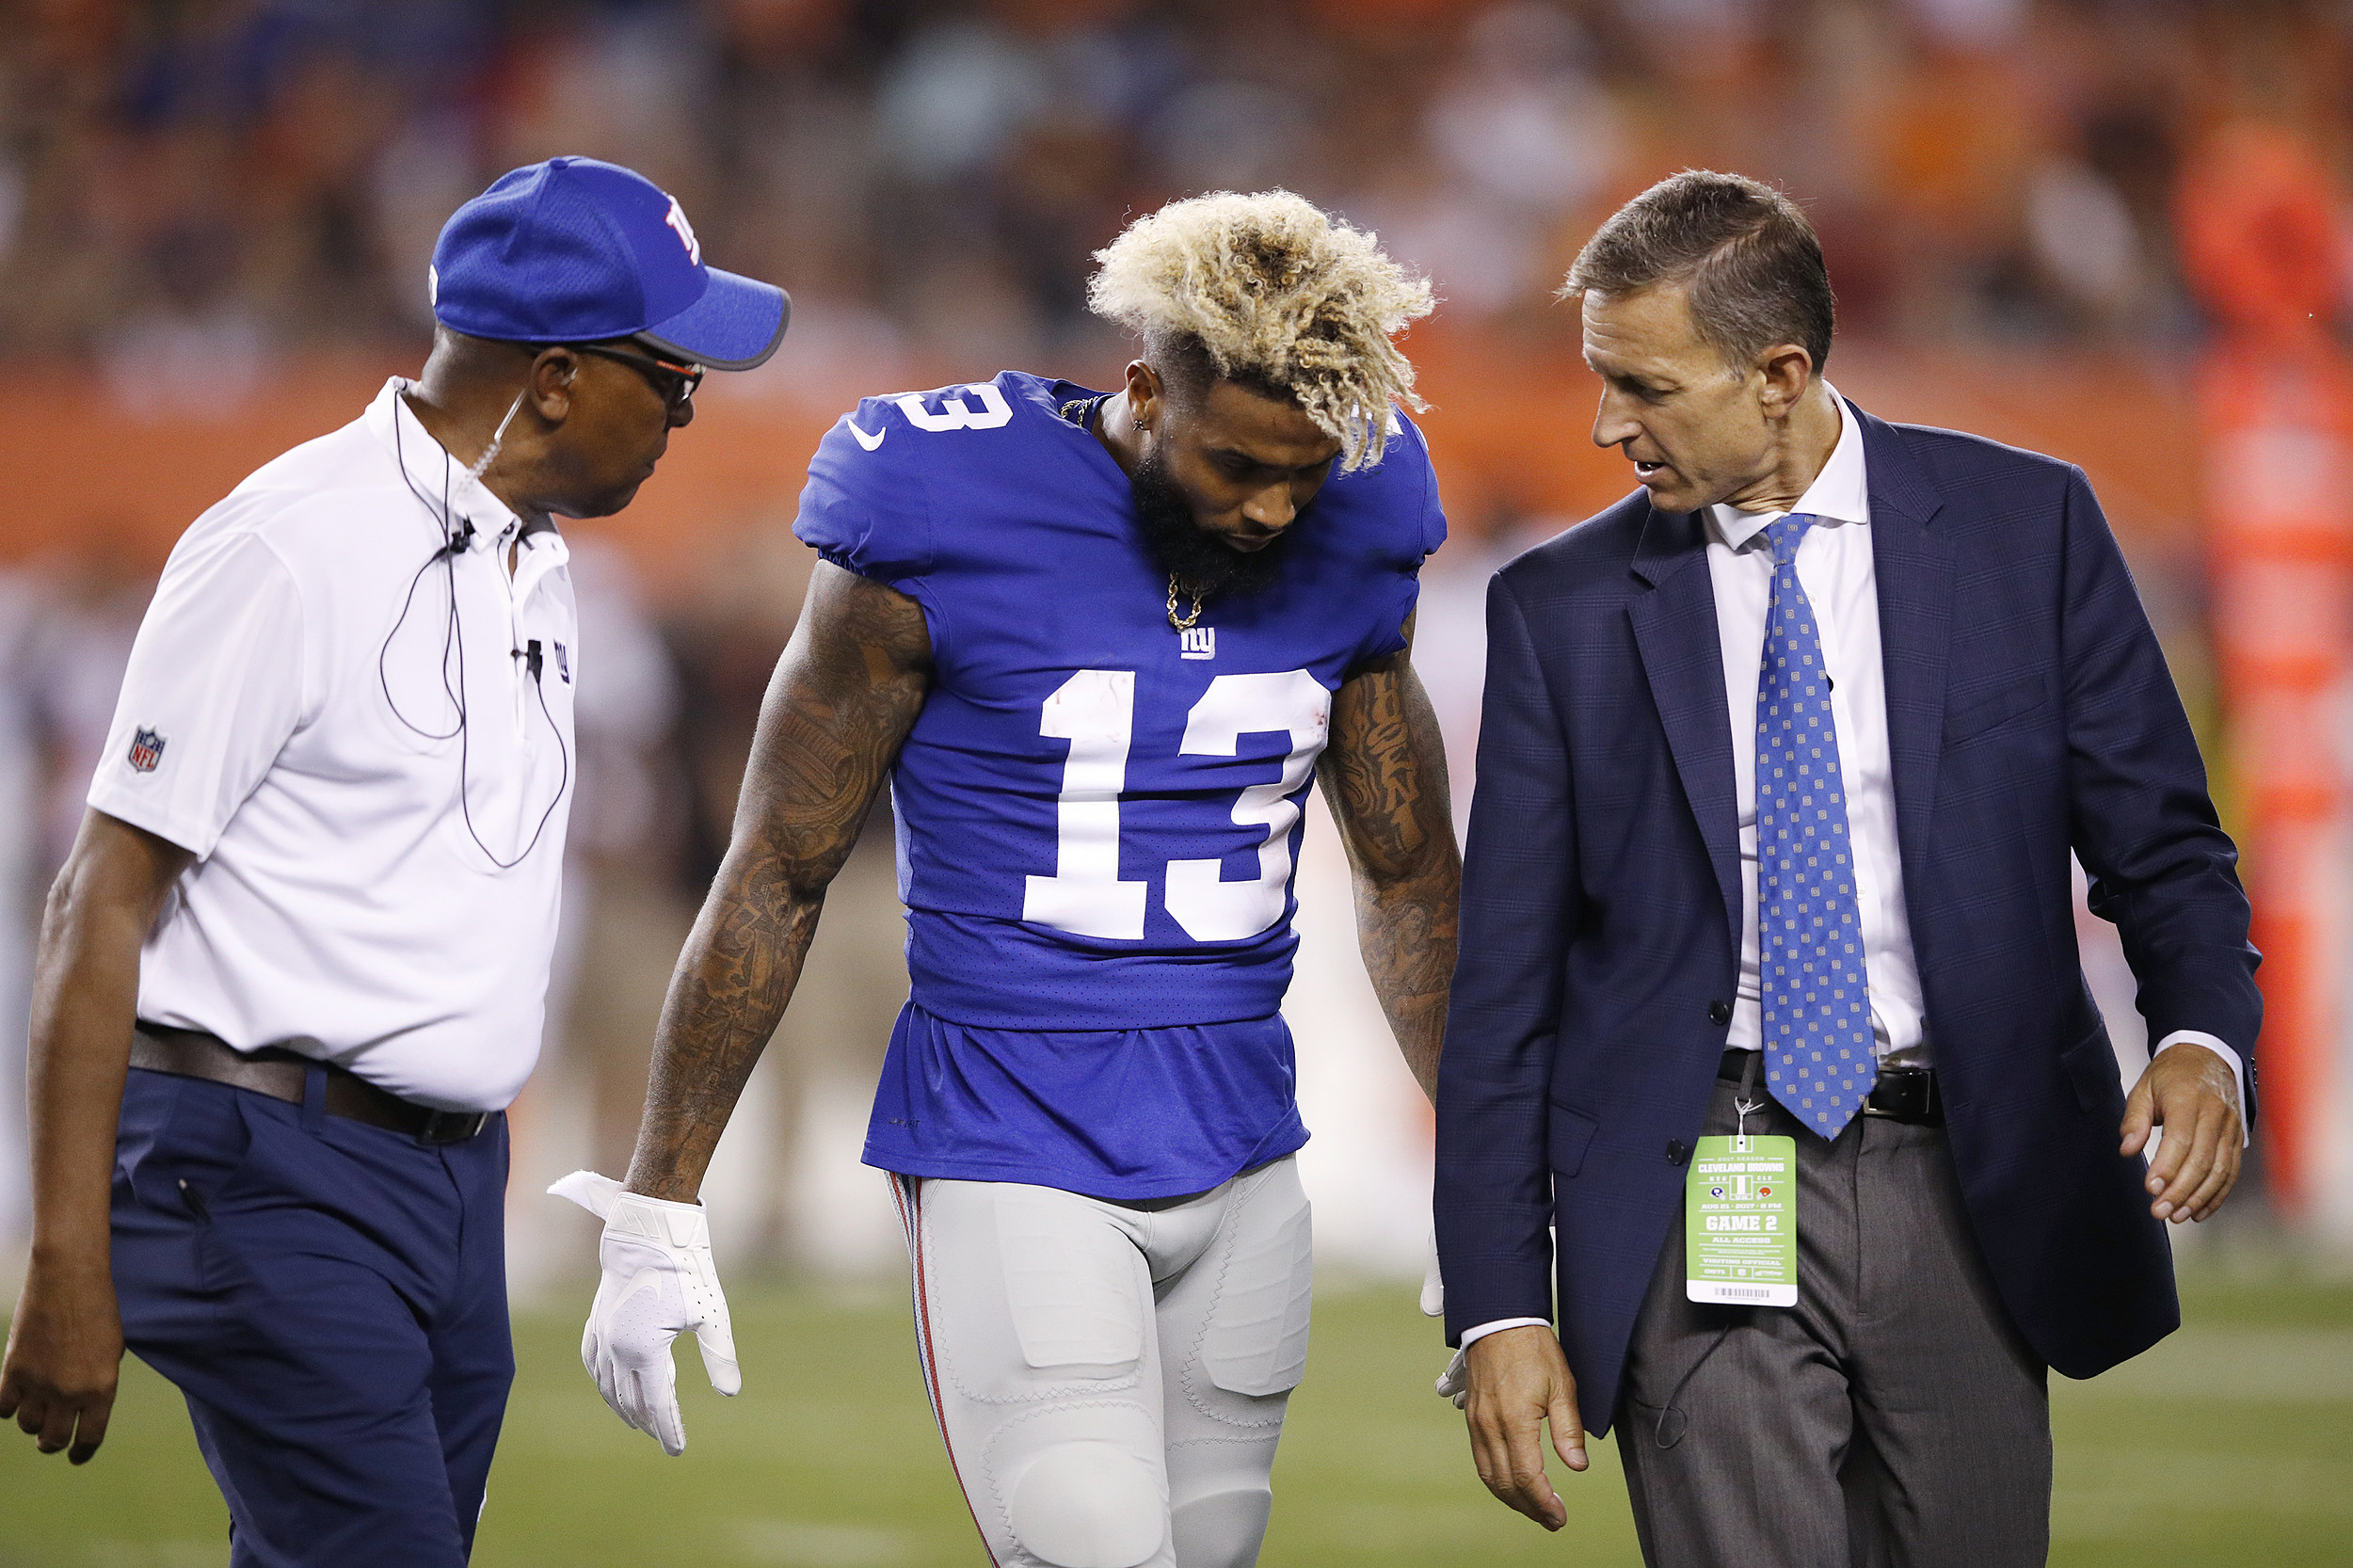 Giants' Beckham, Jr. Could Miss Season Opener vs. Cowboys